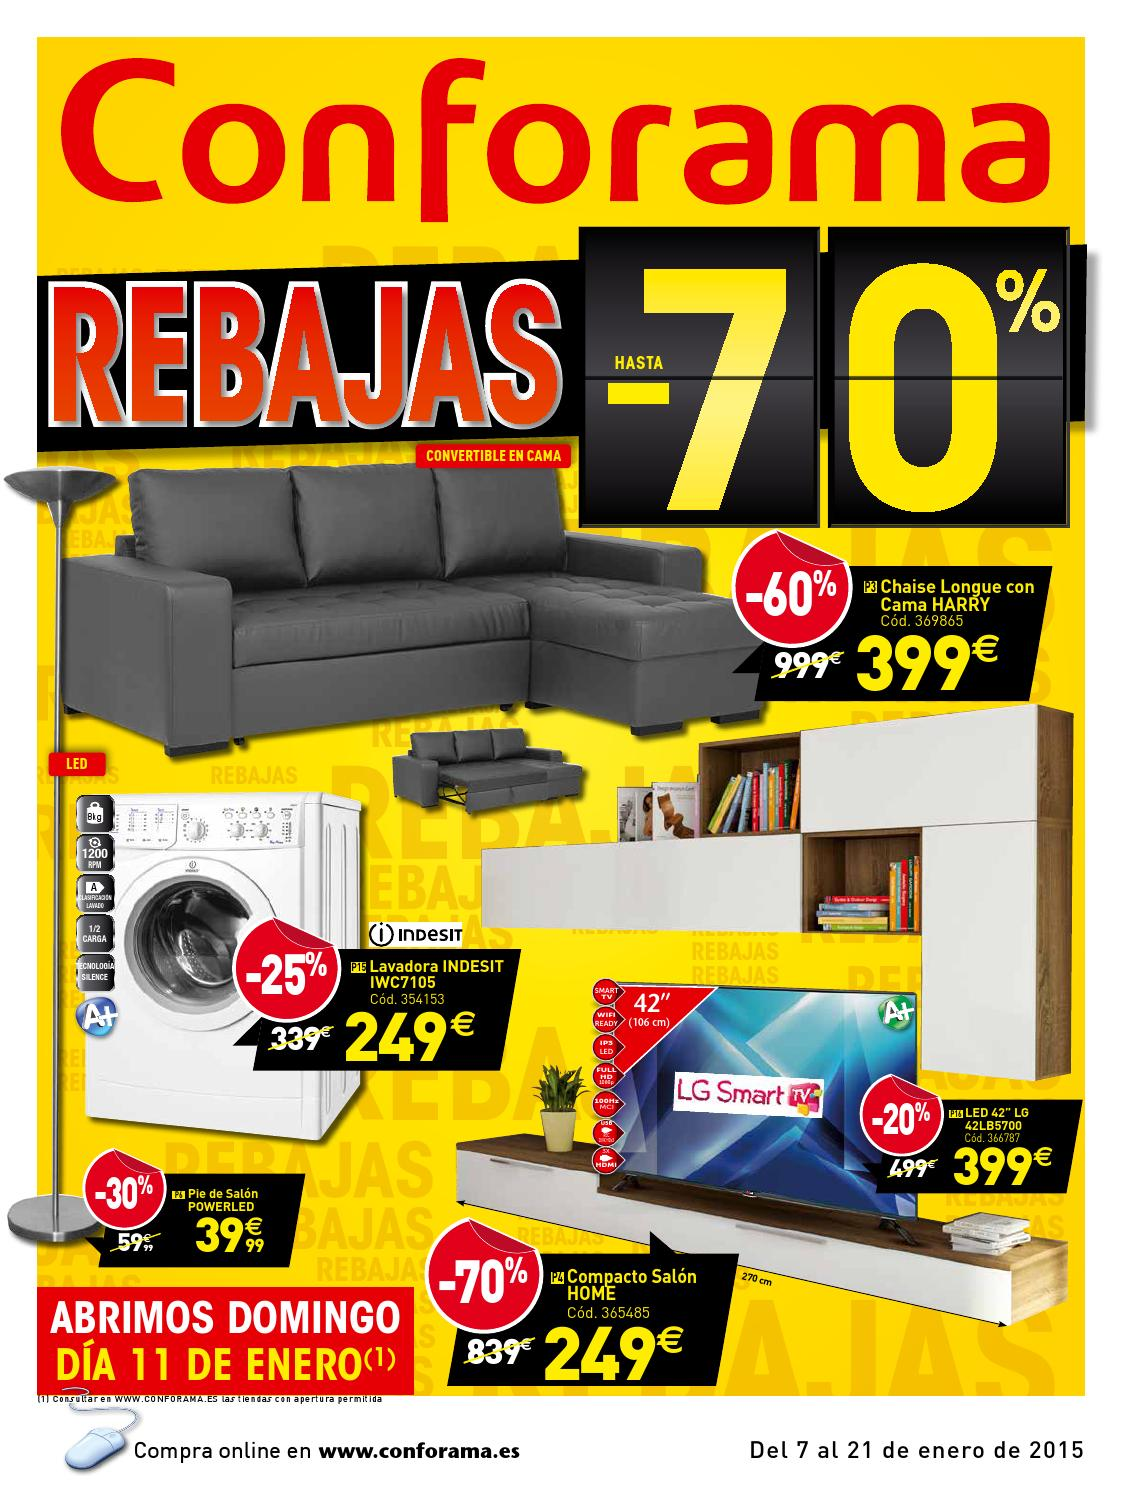 Catalogo conforama rebajas by misfolletos - Conforama sevilla catalogo ...